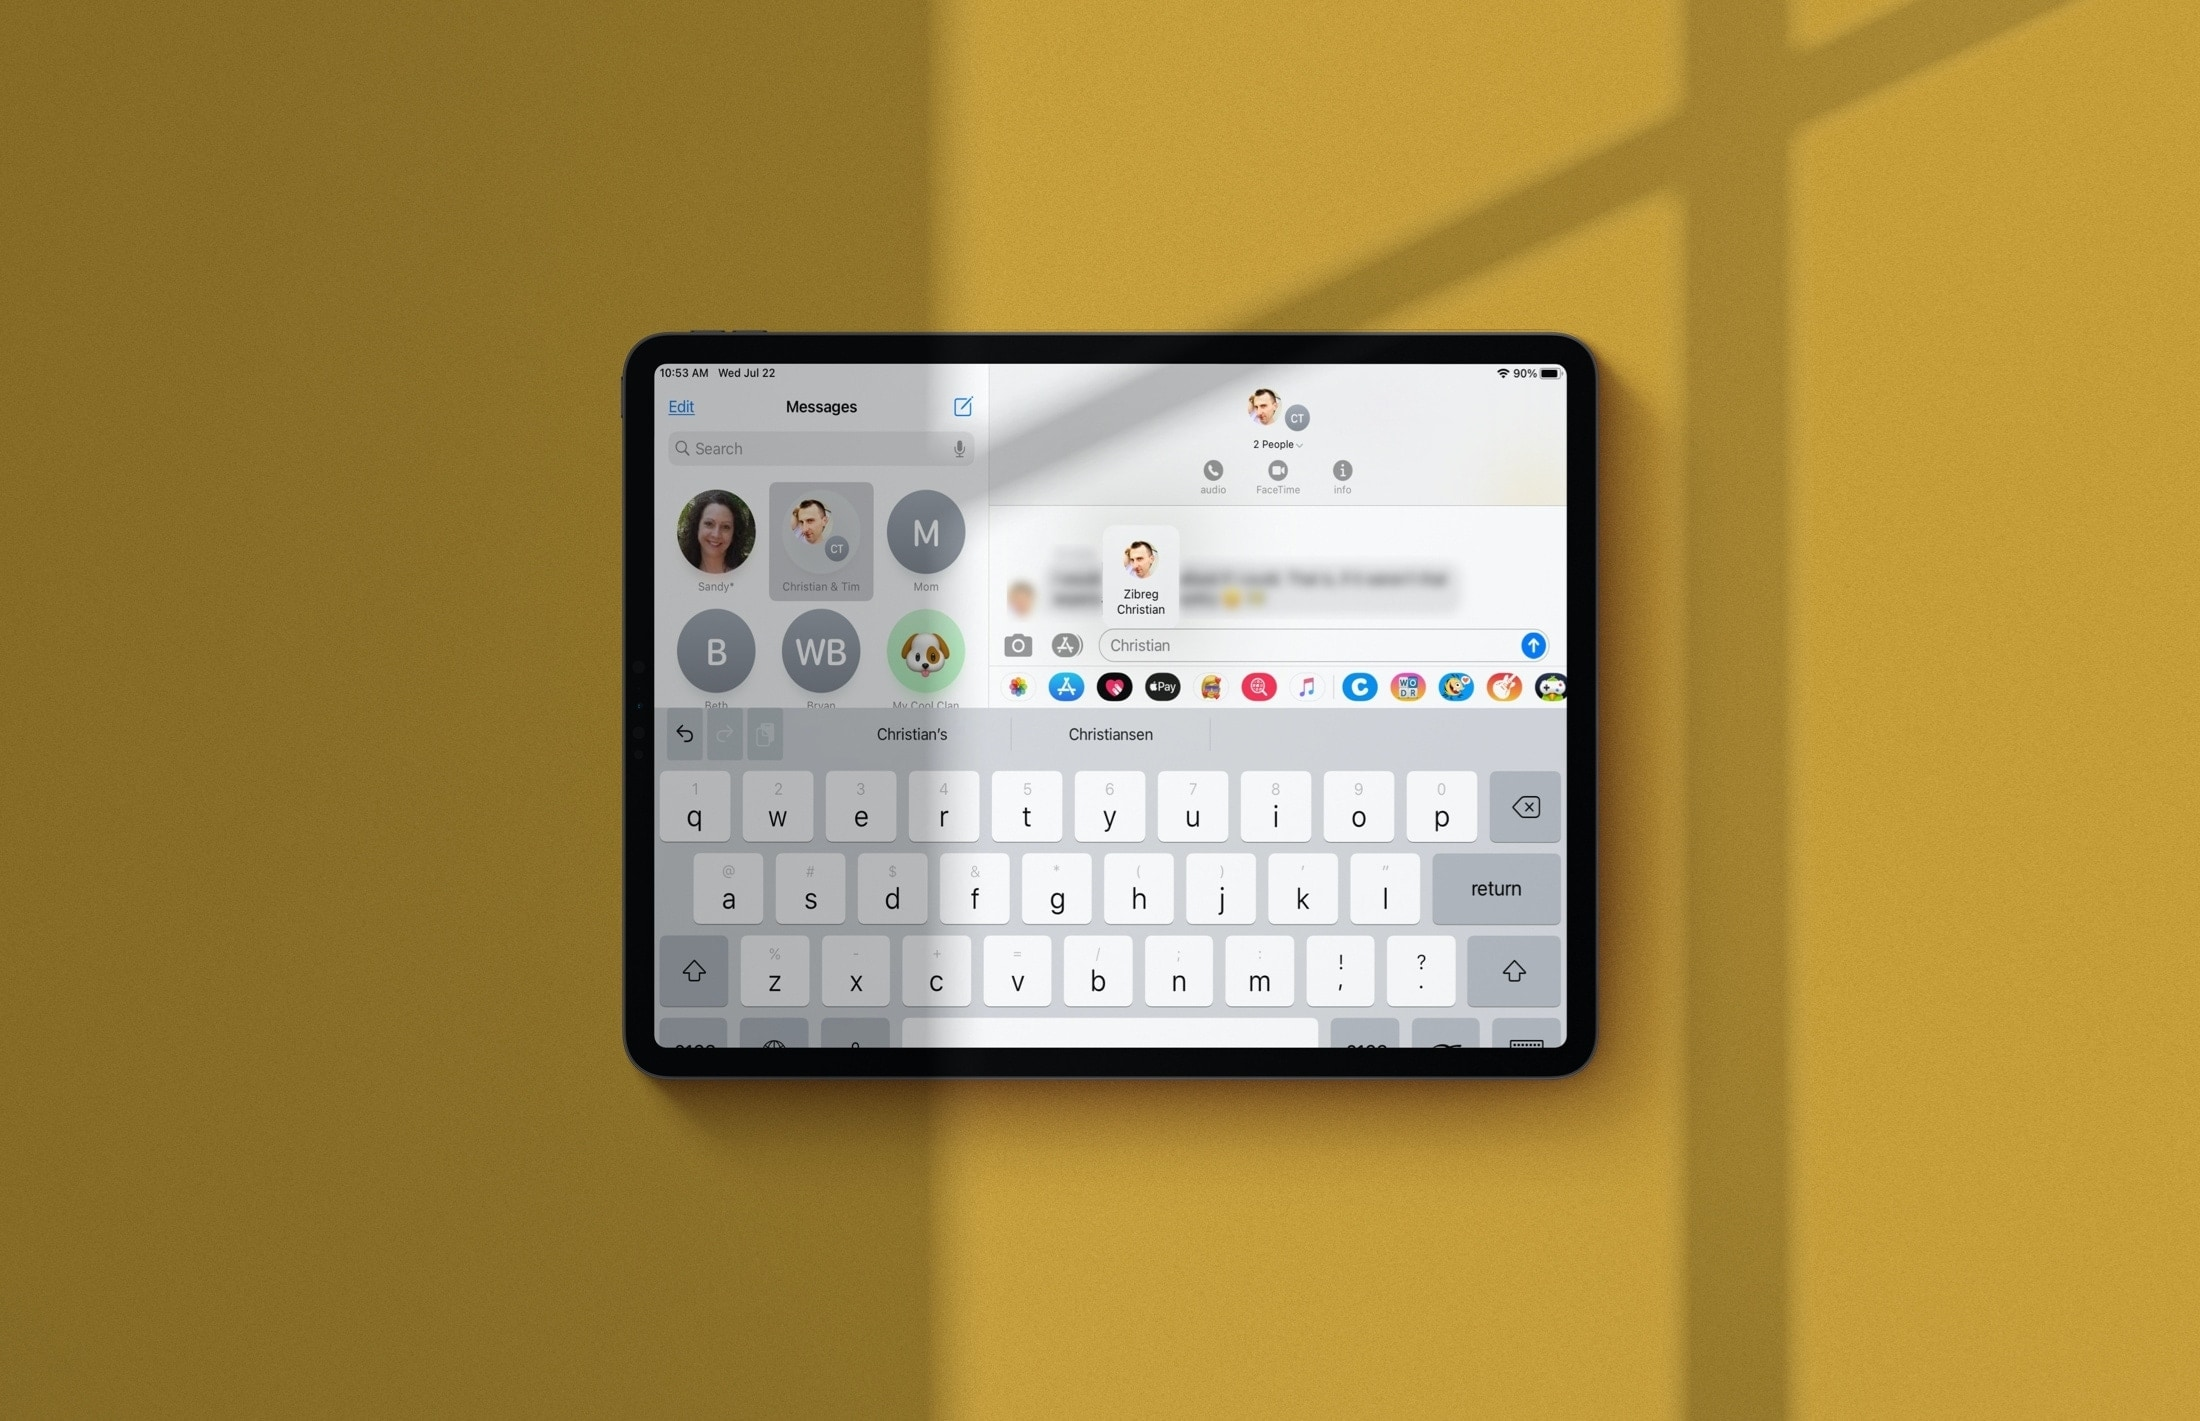 iOS 14 Messages - people mentions in group conversations on iPad